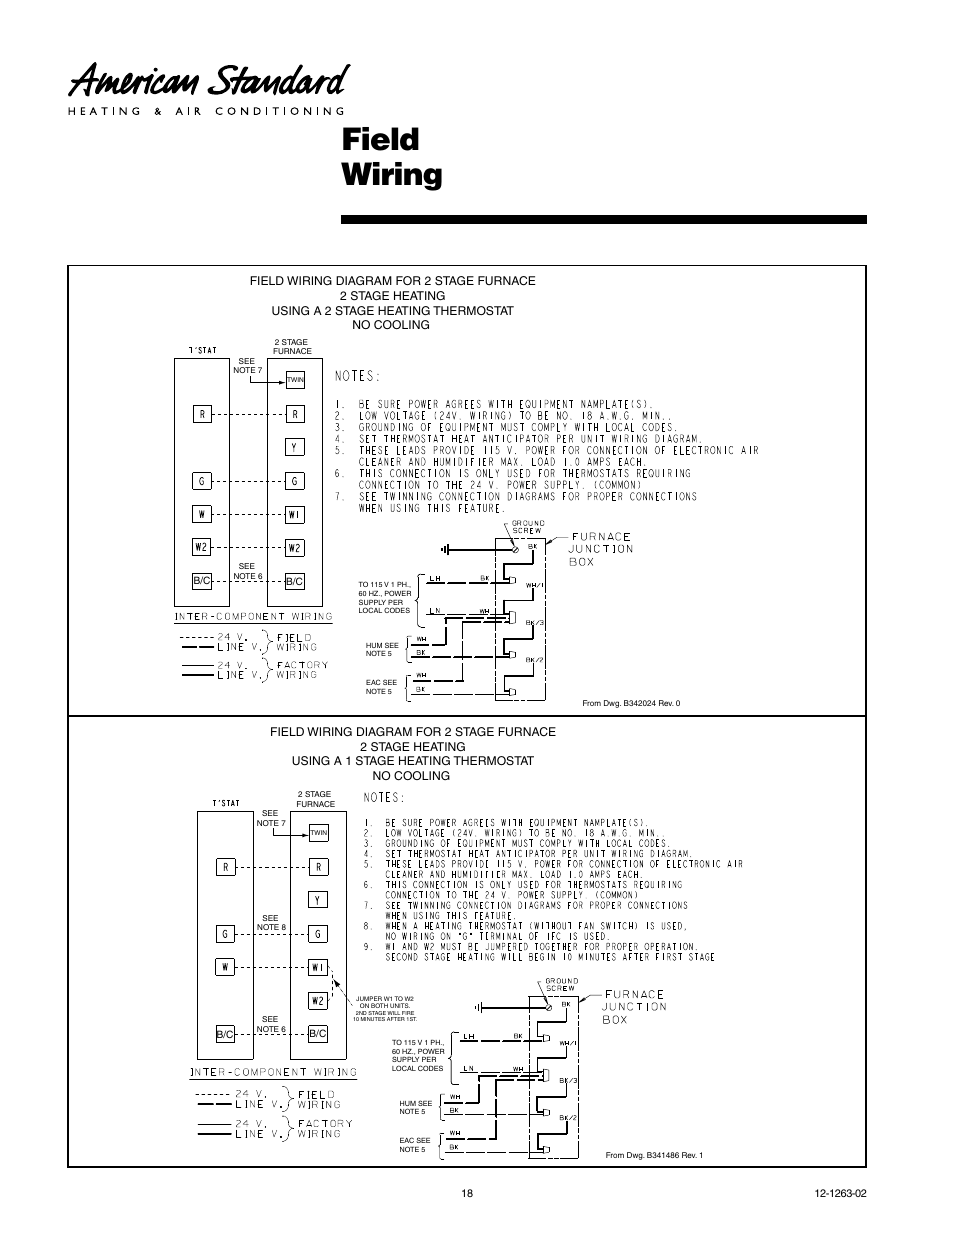 two stage furnace wiring 2 stage nitrous wiring diagram schematic field wiring | american standard freedom 80 user manual | page 18 / 24 #12